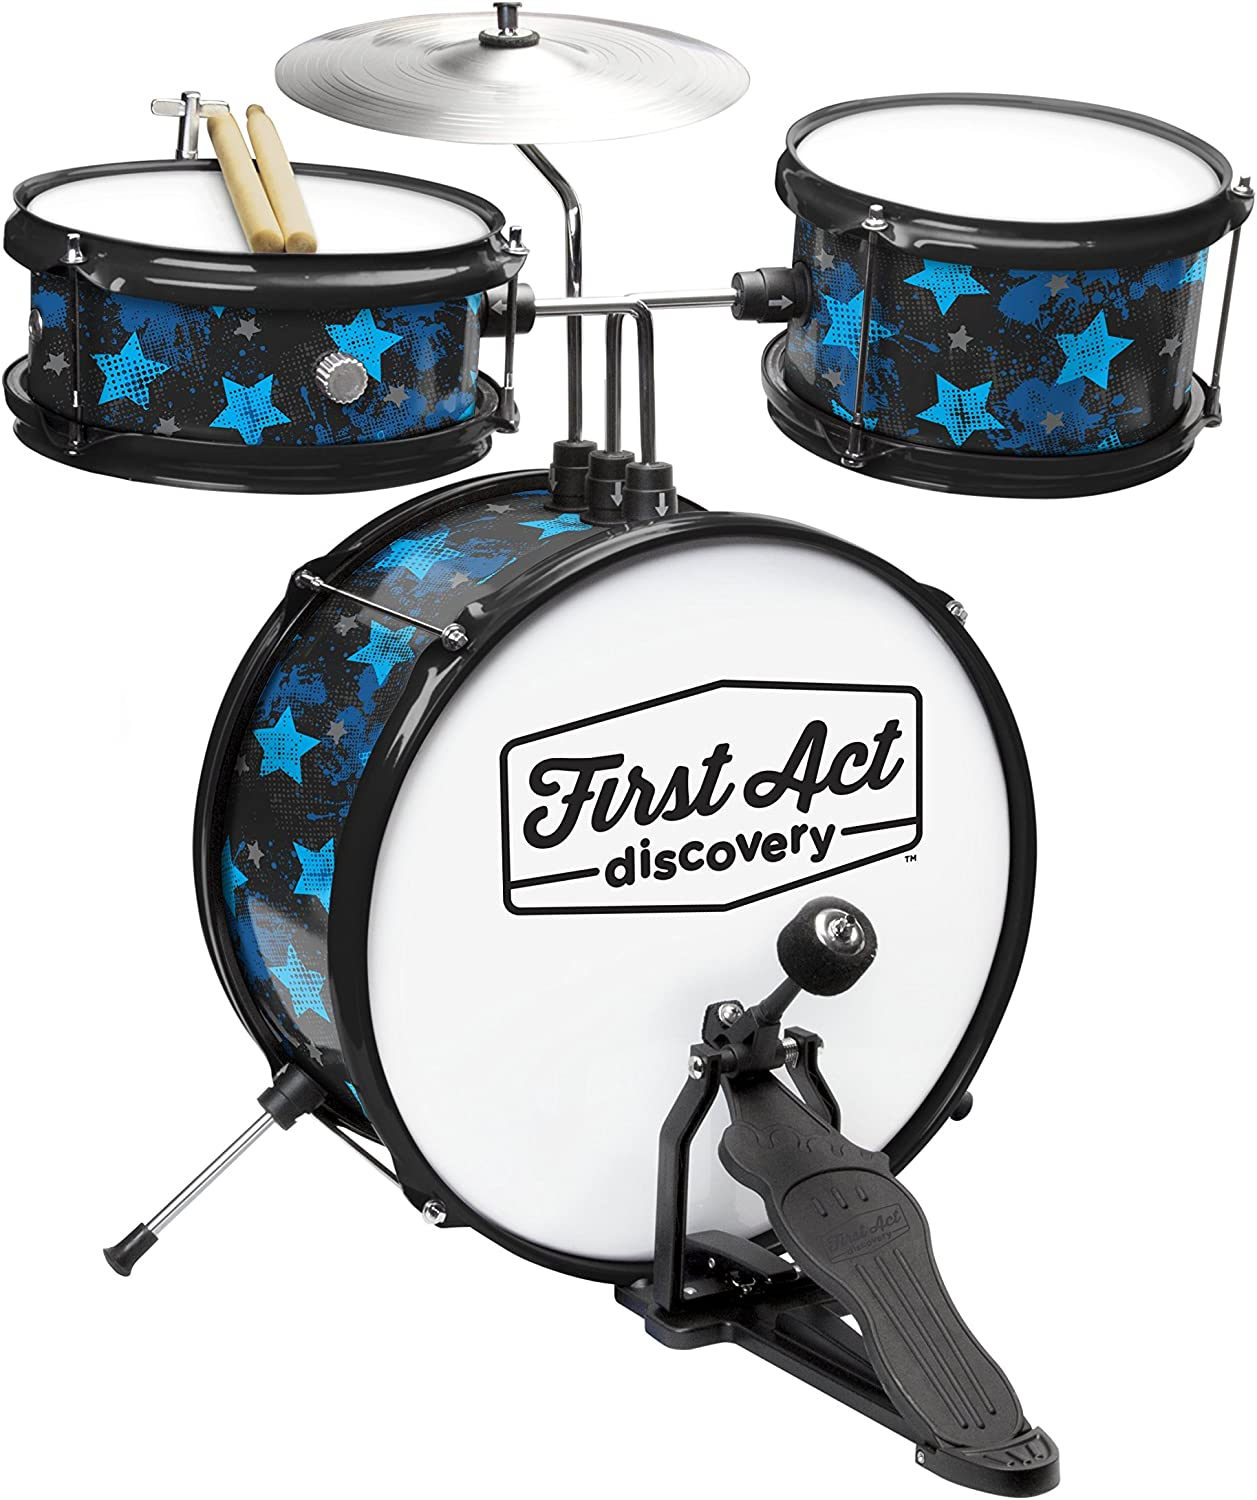 First Act Discovery Drum Set – Best for affordability